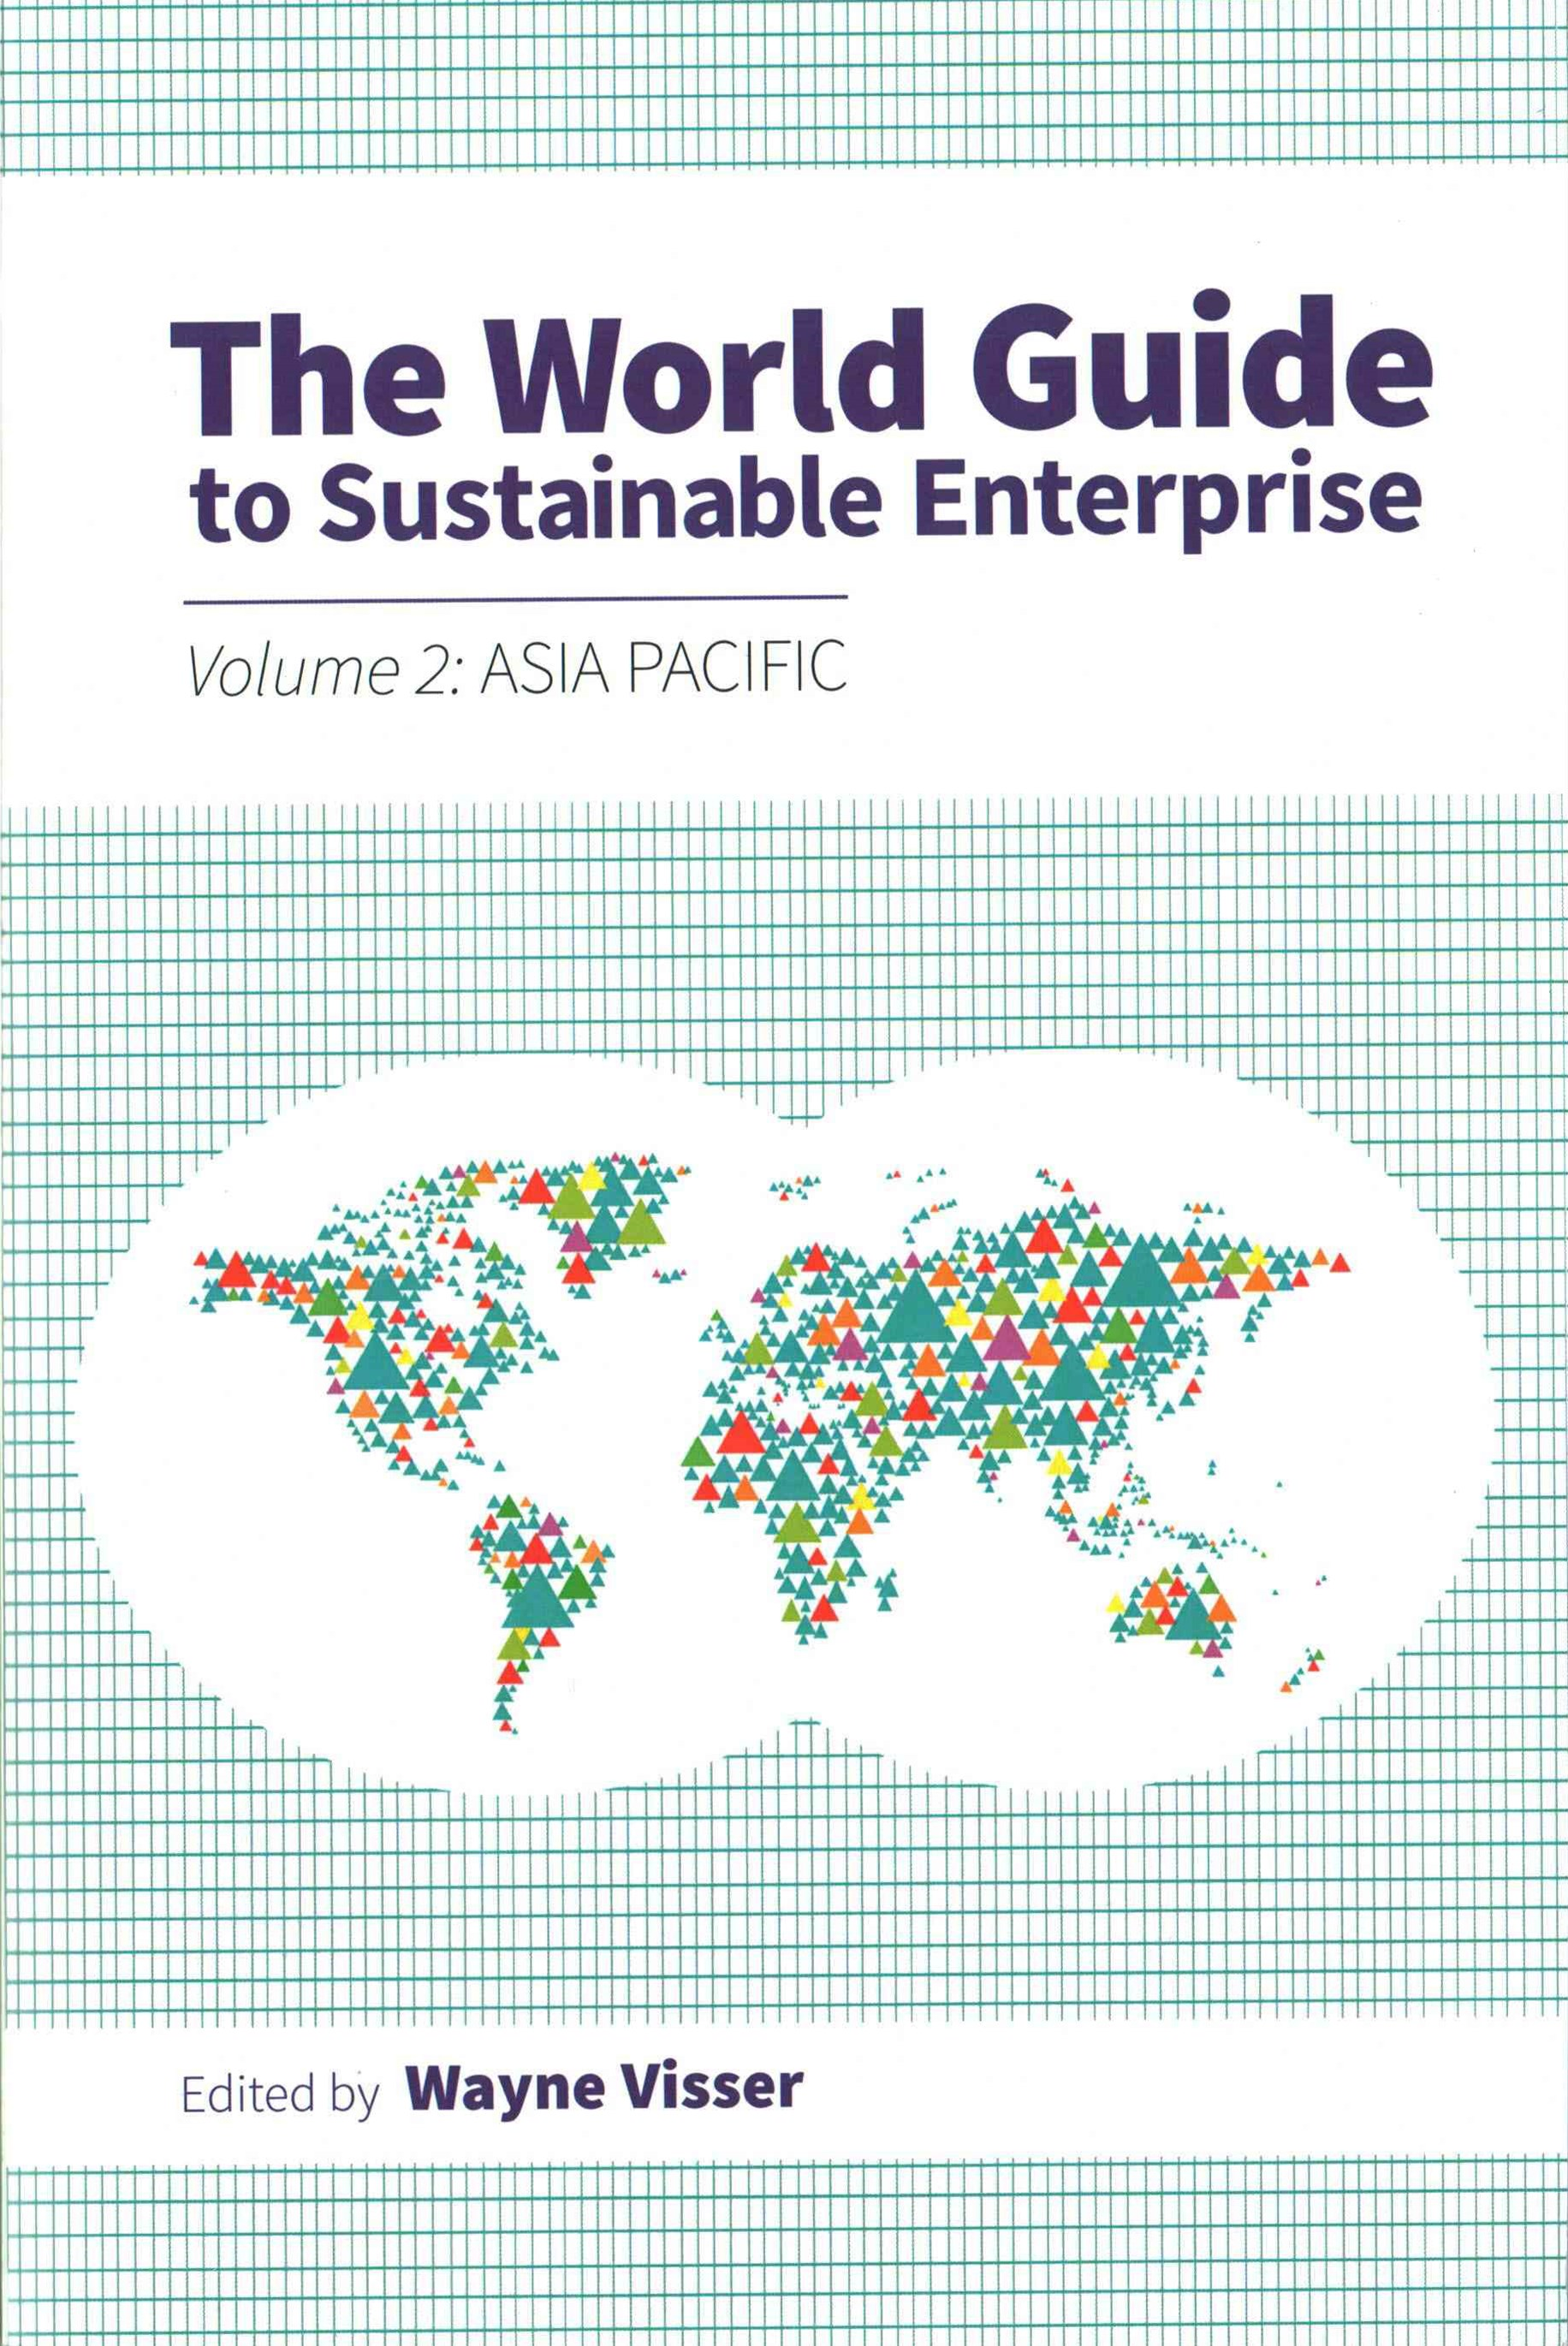 The World Guide to Sustainable Enterprise - Asia Pacific